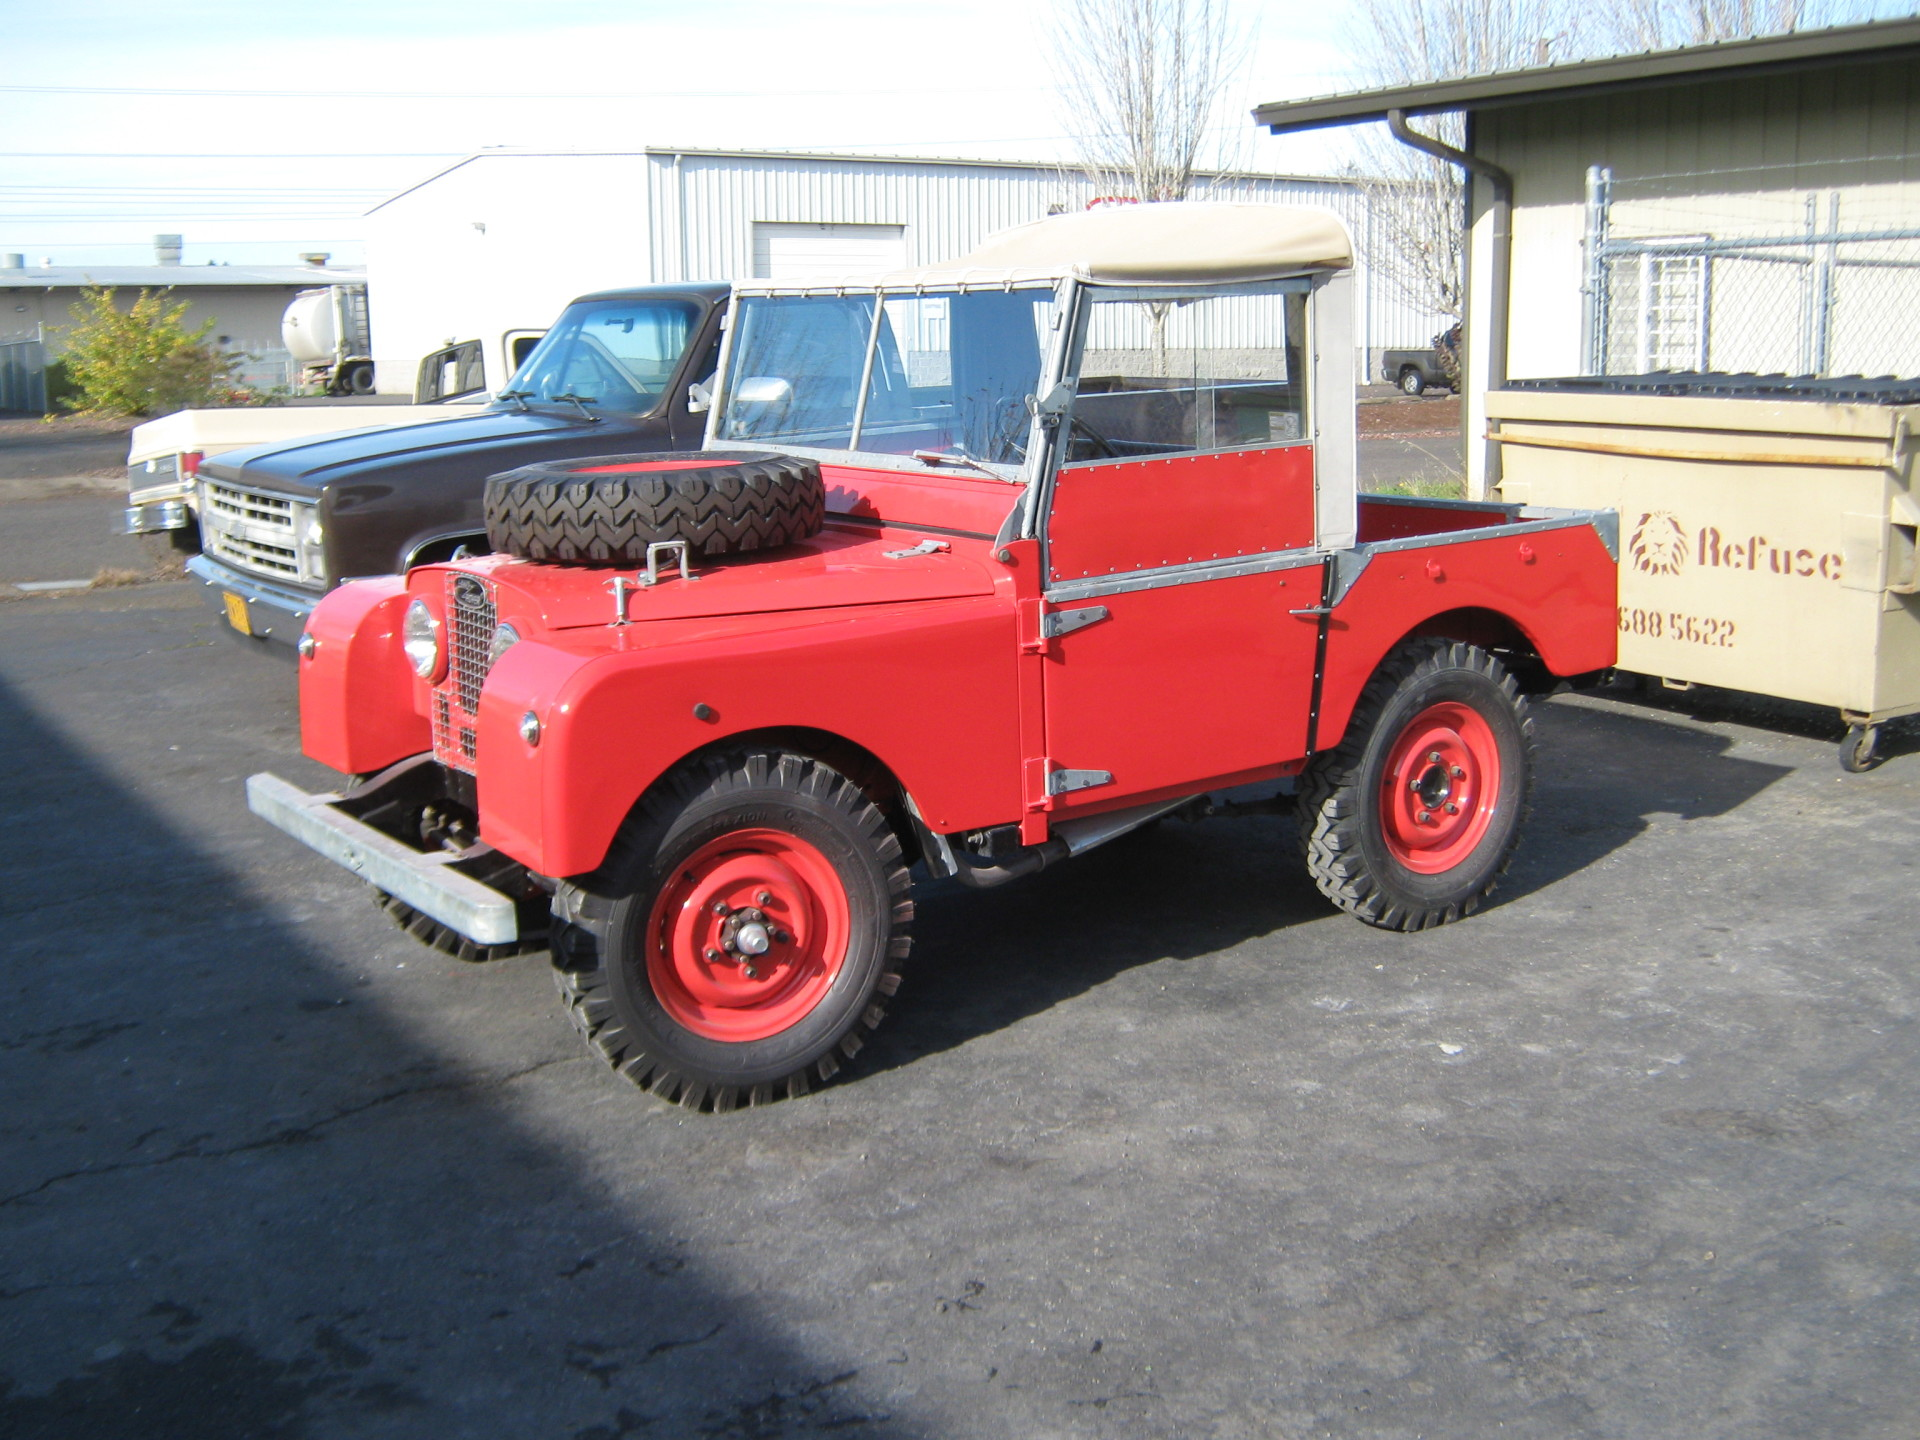 Series I Land Rover